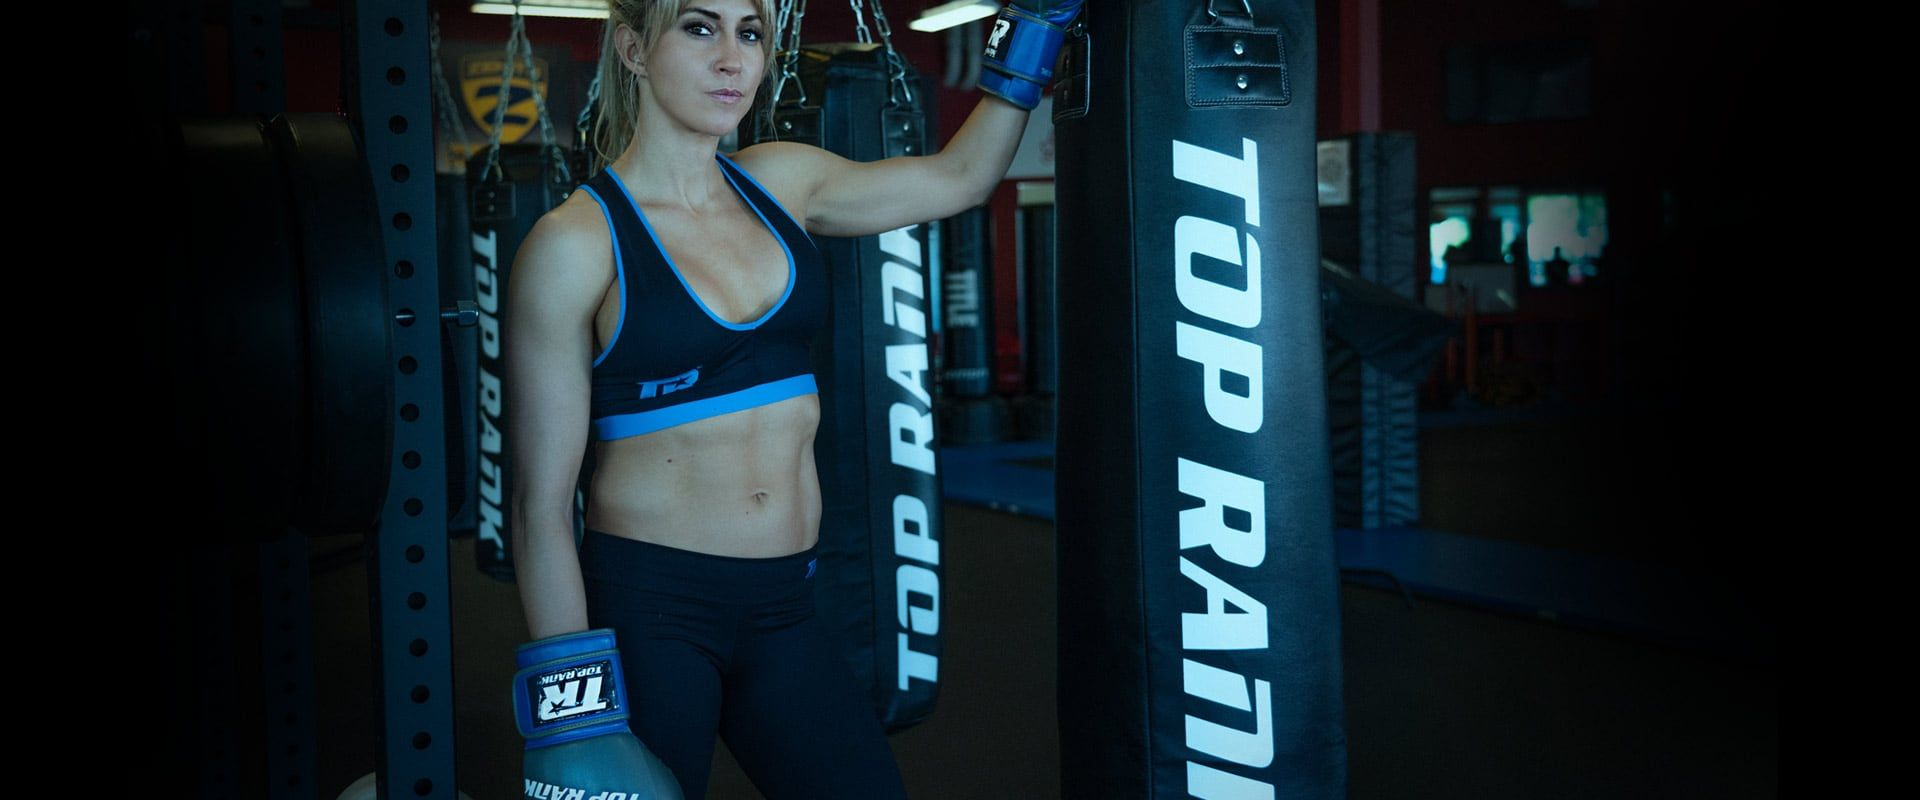 Shop Top Rank apparel and fight gear